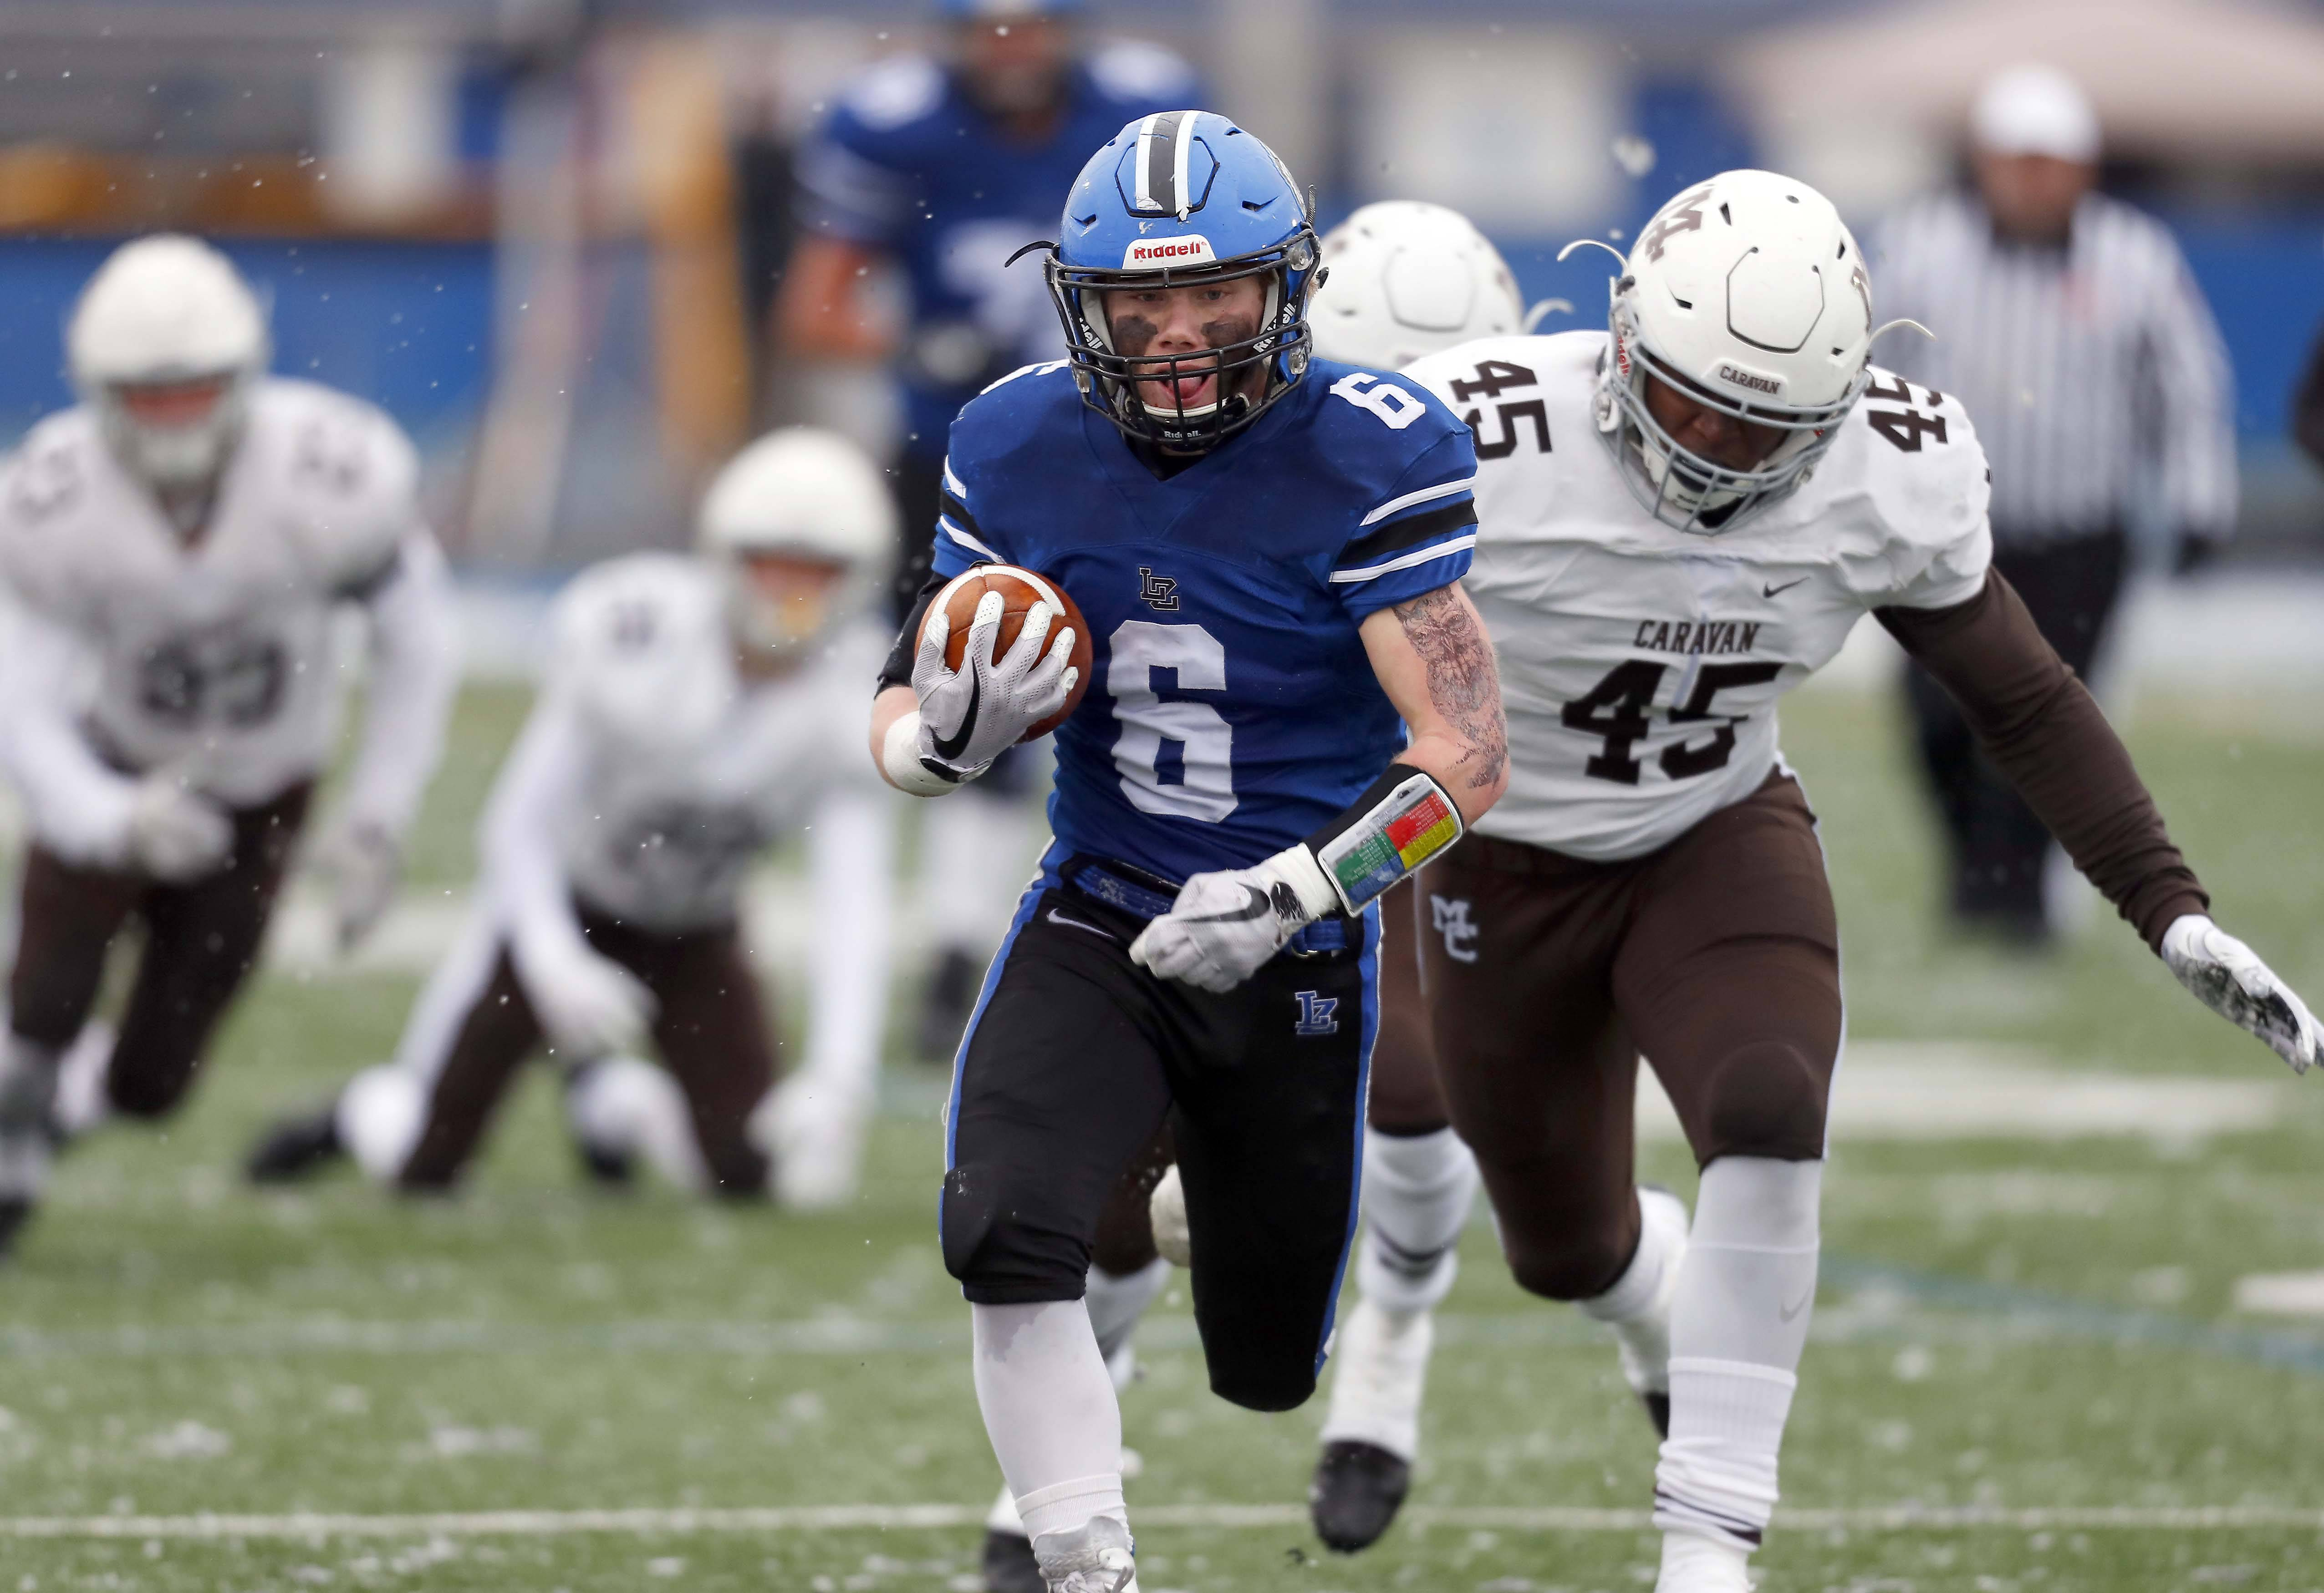 Lake Zurich's Joey Stutzman (6) moves upfield during the Bears' 14-7 Class 7A state semifinal win against Mt. Carmel last week. Lake Zurich takes on Batavia at 4 p.m. Saturday at NIU's Huskie Stadium for the state championship.